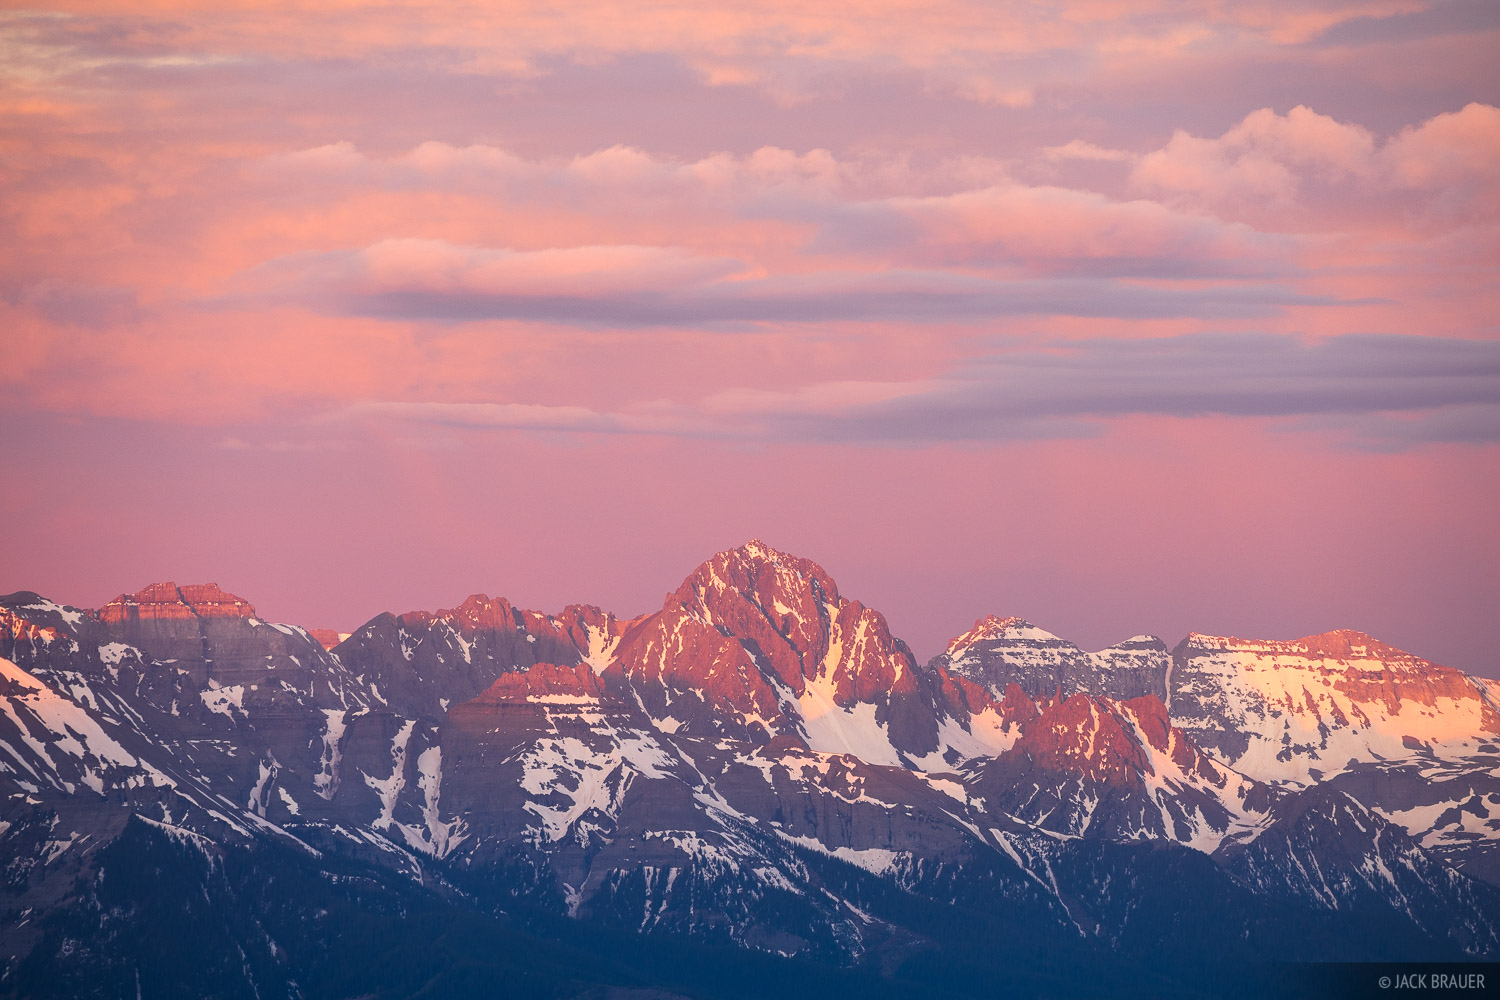 Sunrise light on Mount Sneffels (14,156 ft.) as seen from afar.